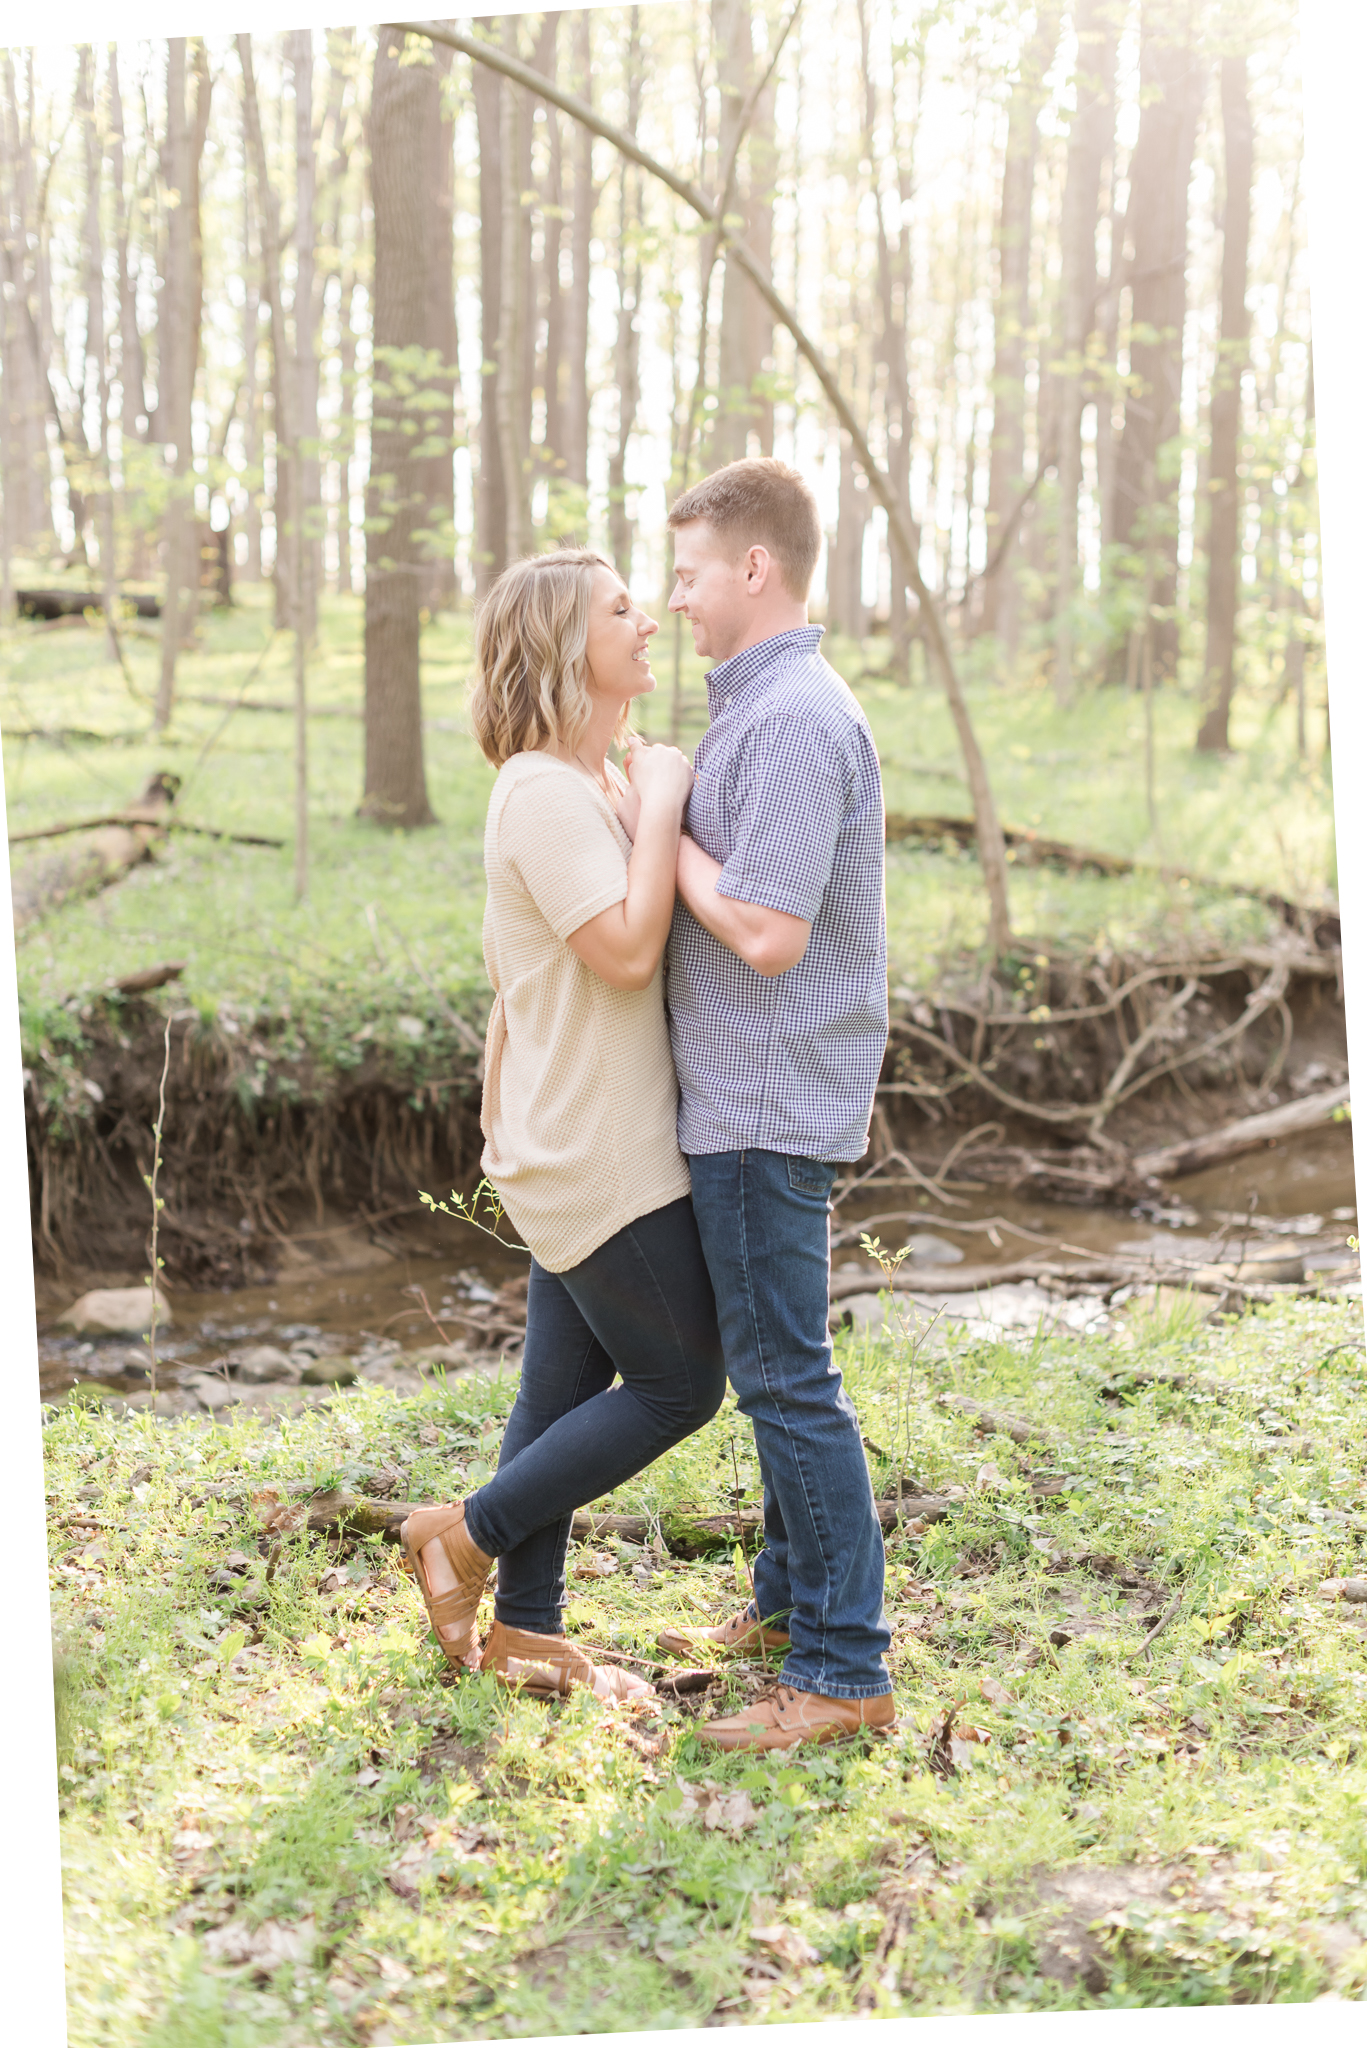 Richie Woods Nature Preserve and Mustard Seed Gardens Engagement Session Wedding Photos-23.jpg